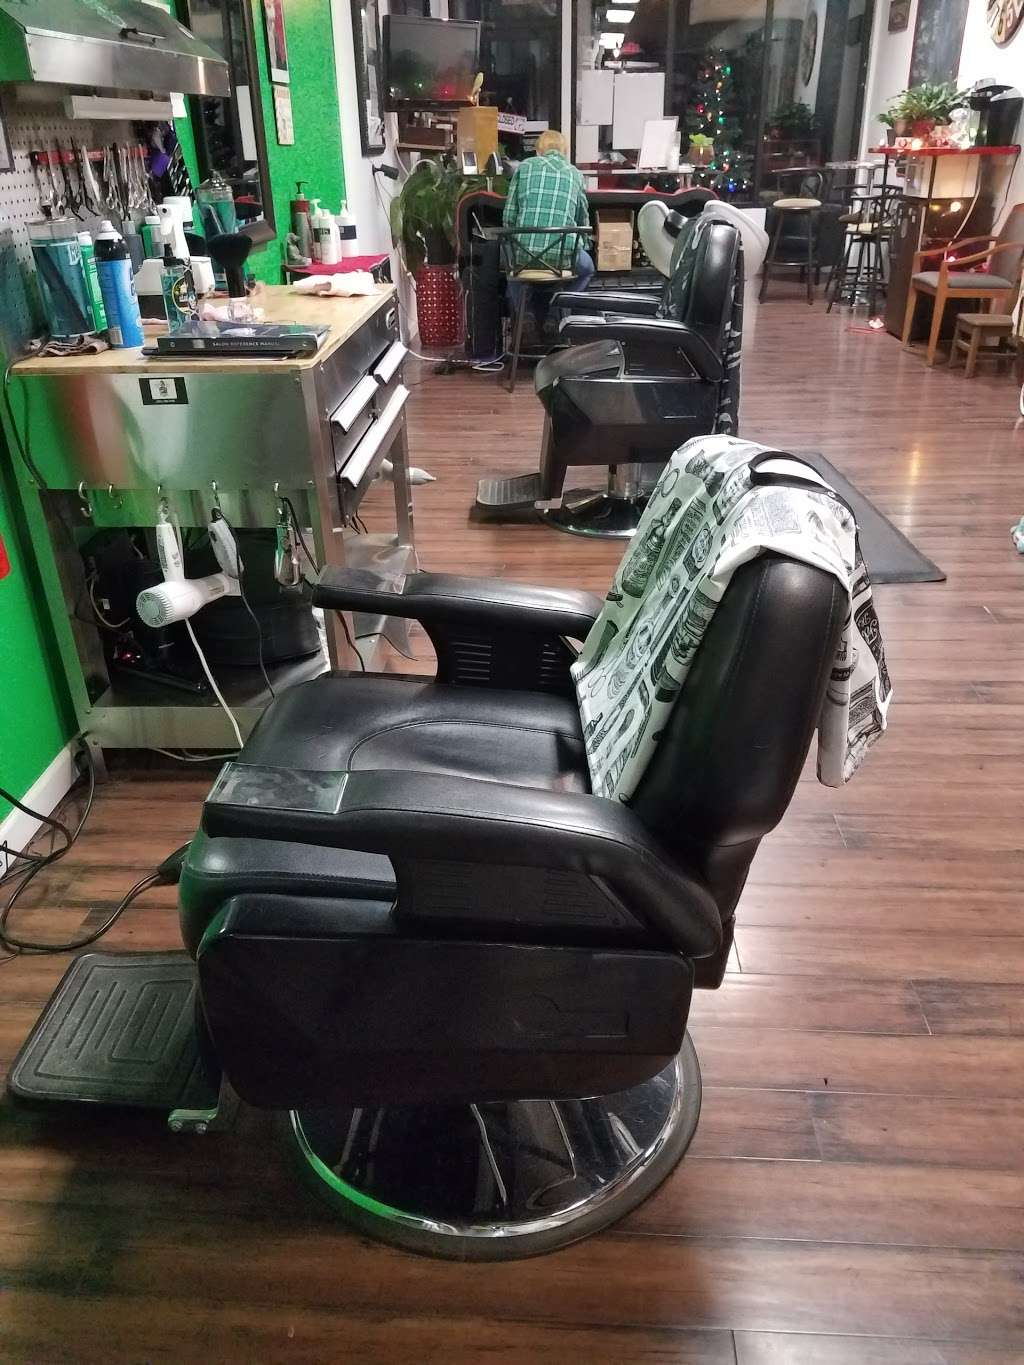 The Garage Hair Studio - hair care  | Photo 2 of 6 | Address: 1033 River Rd, New Milford, NJ 07646, USA | Phone: (201) 530-7440